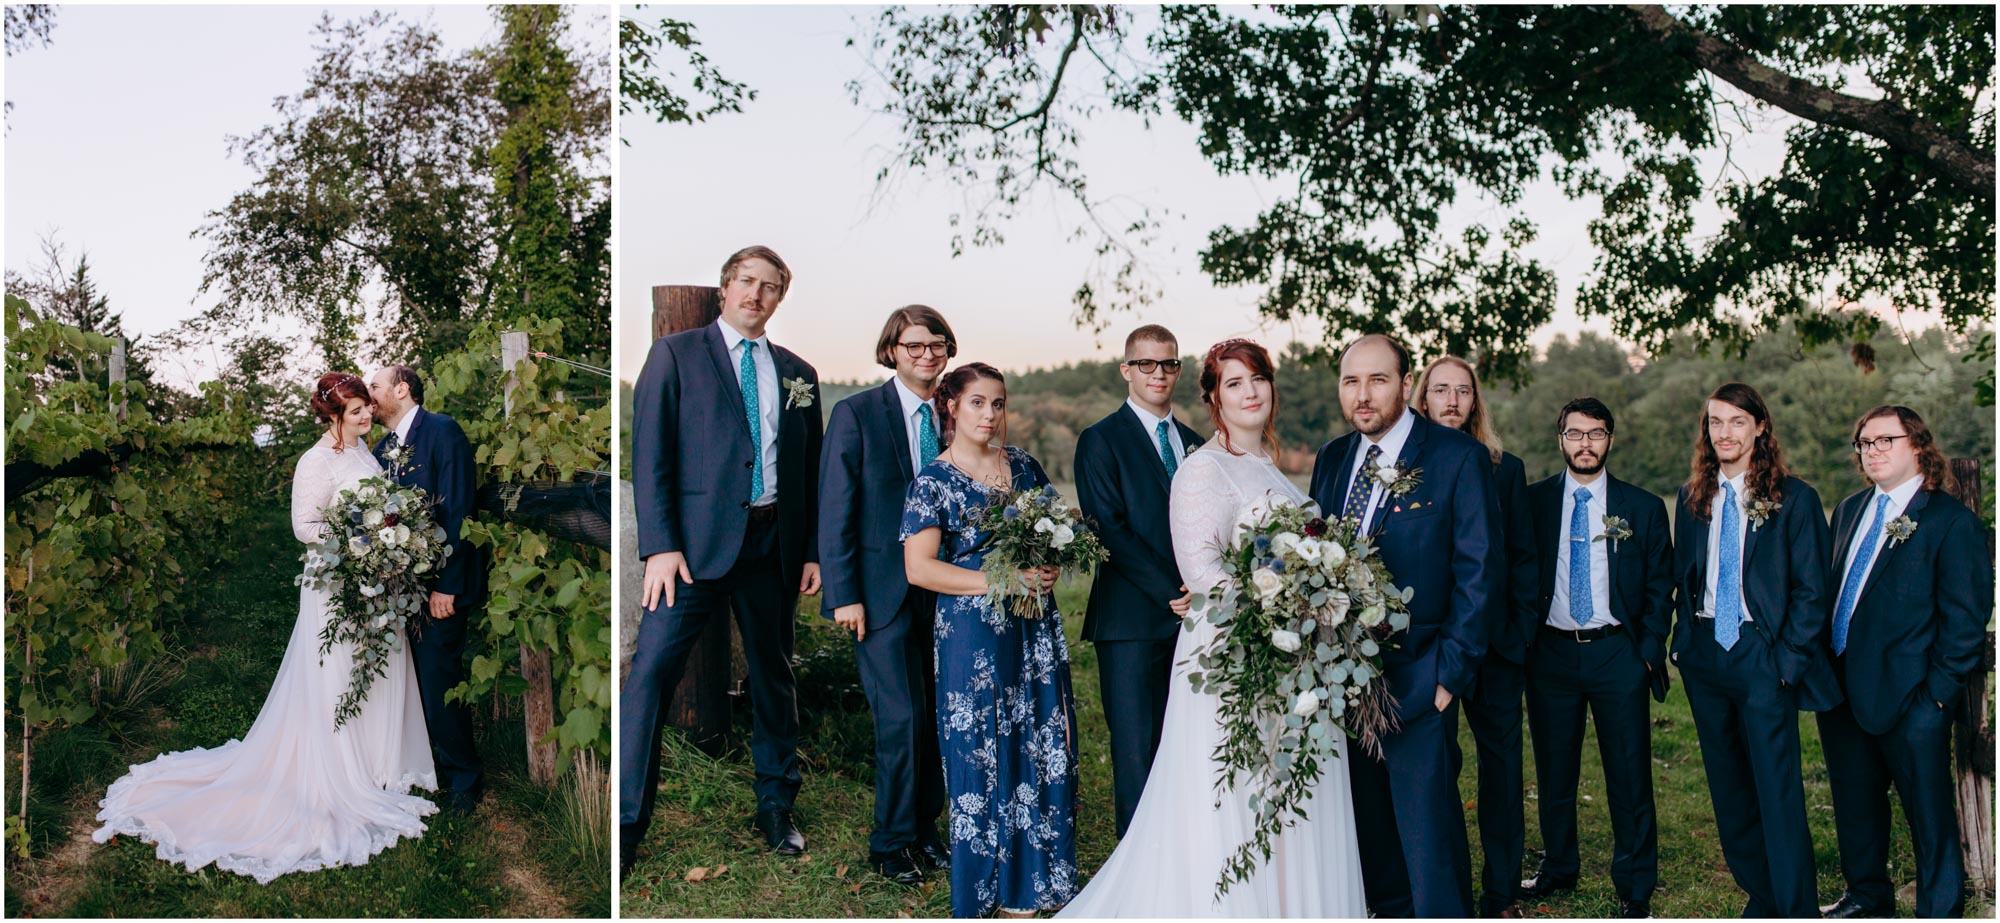 Bride and groom and wedding party in vineyard - by Ashleigh Laureen Photography at LaBelle Winery in Amherst, New Hampshire